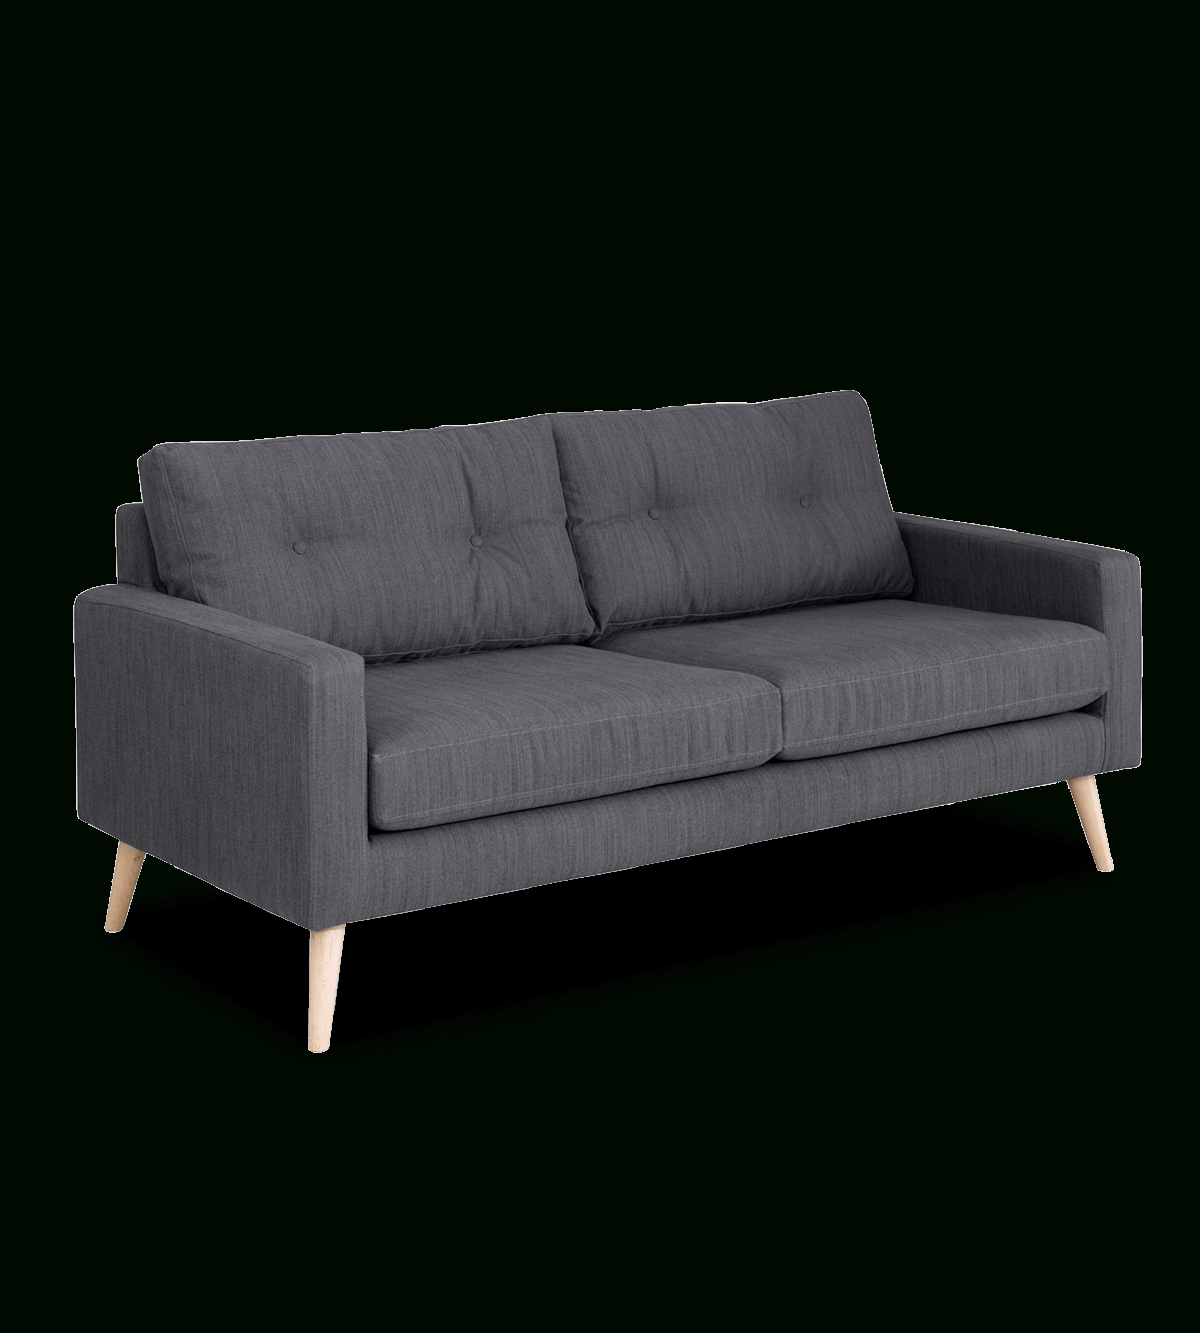 Sofas - Commercial - More in Commercial Sofas (Image 12 of 15)